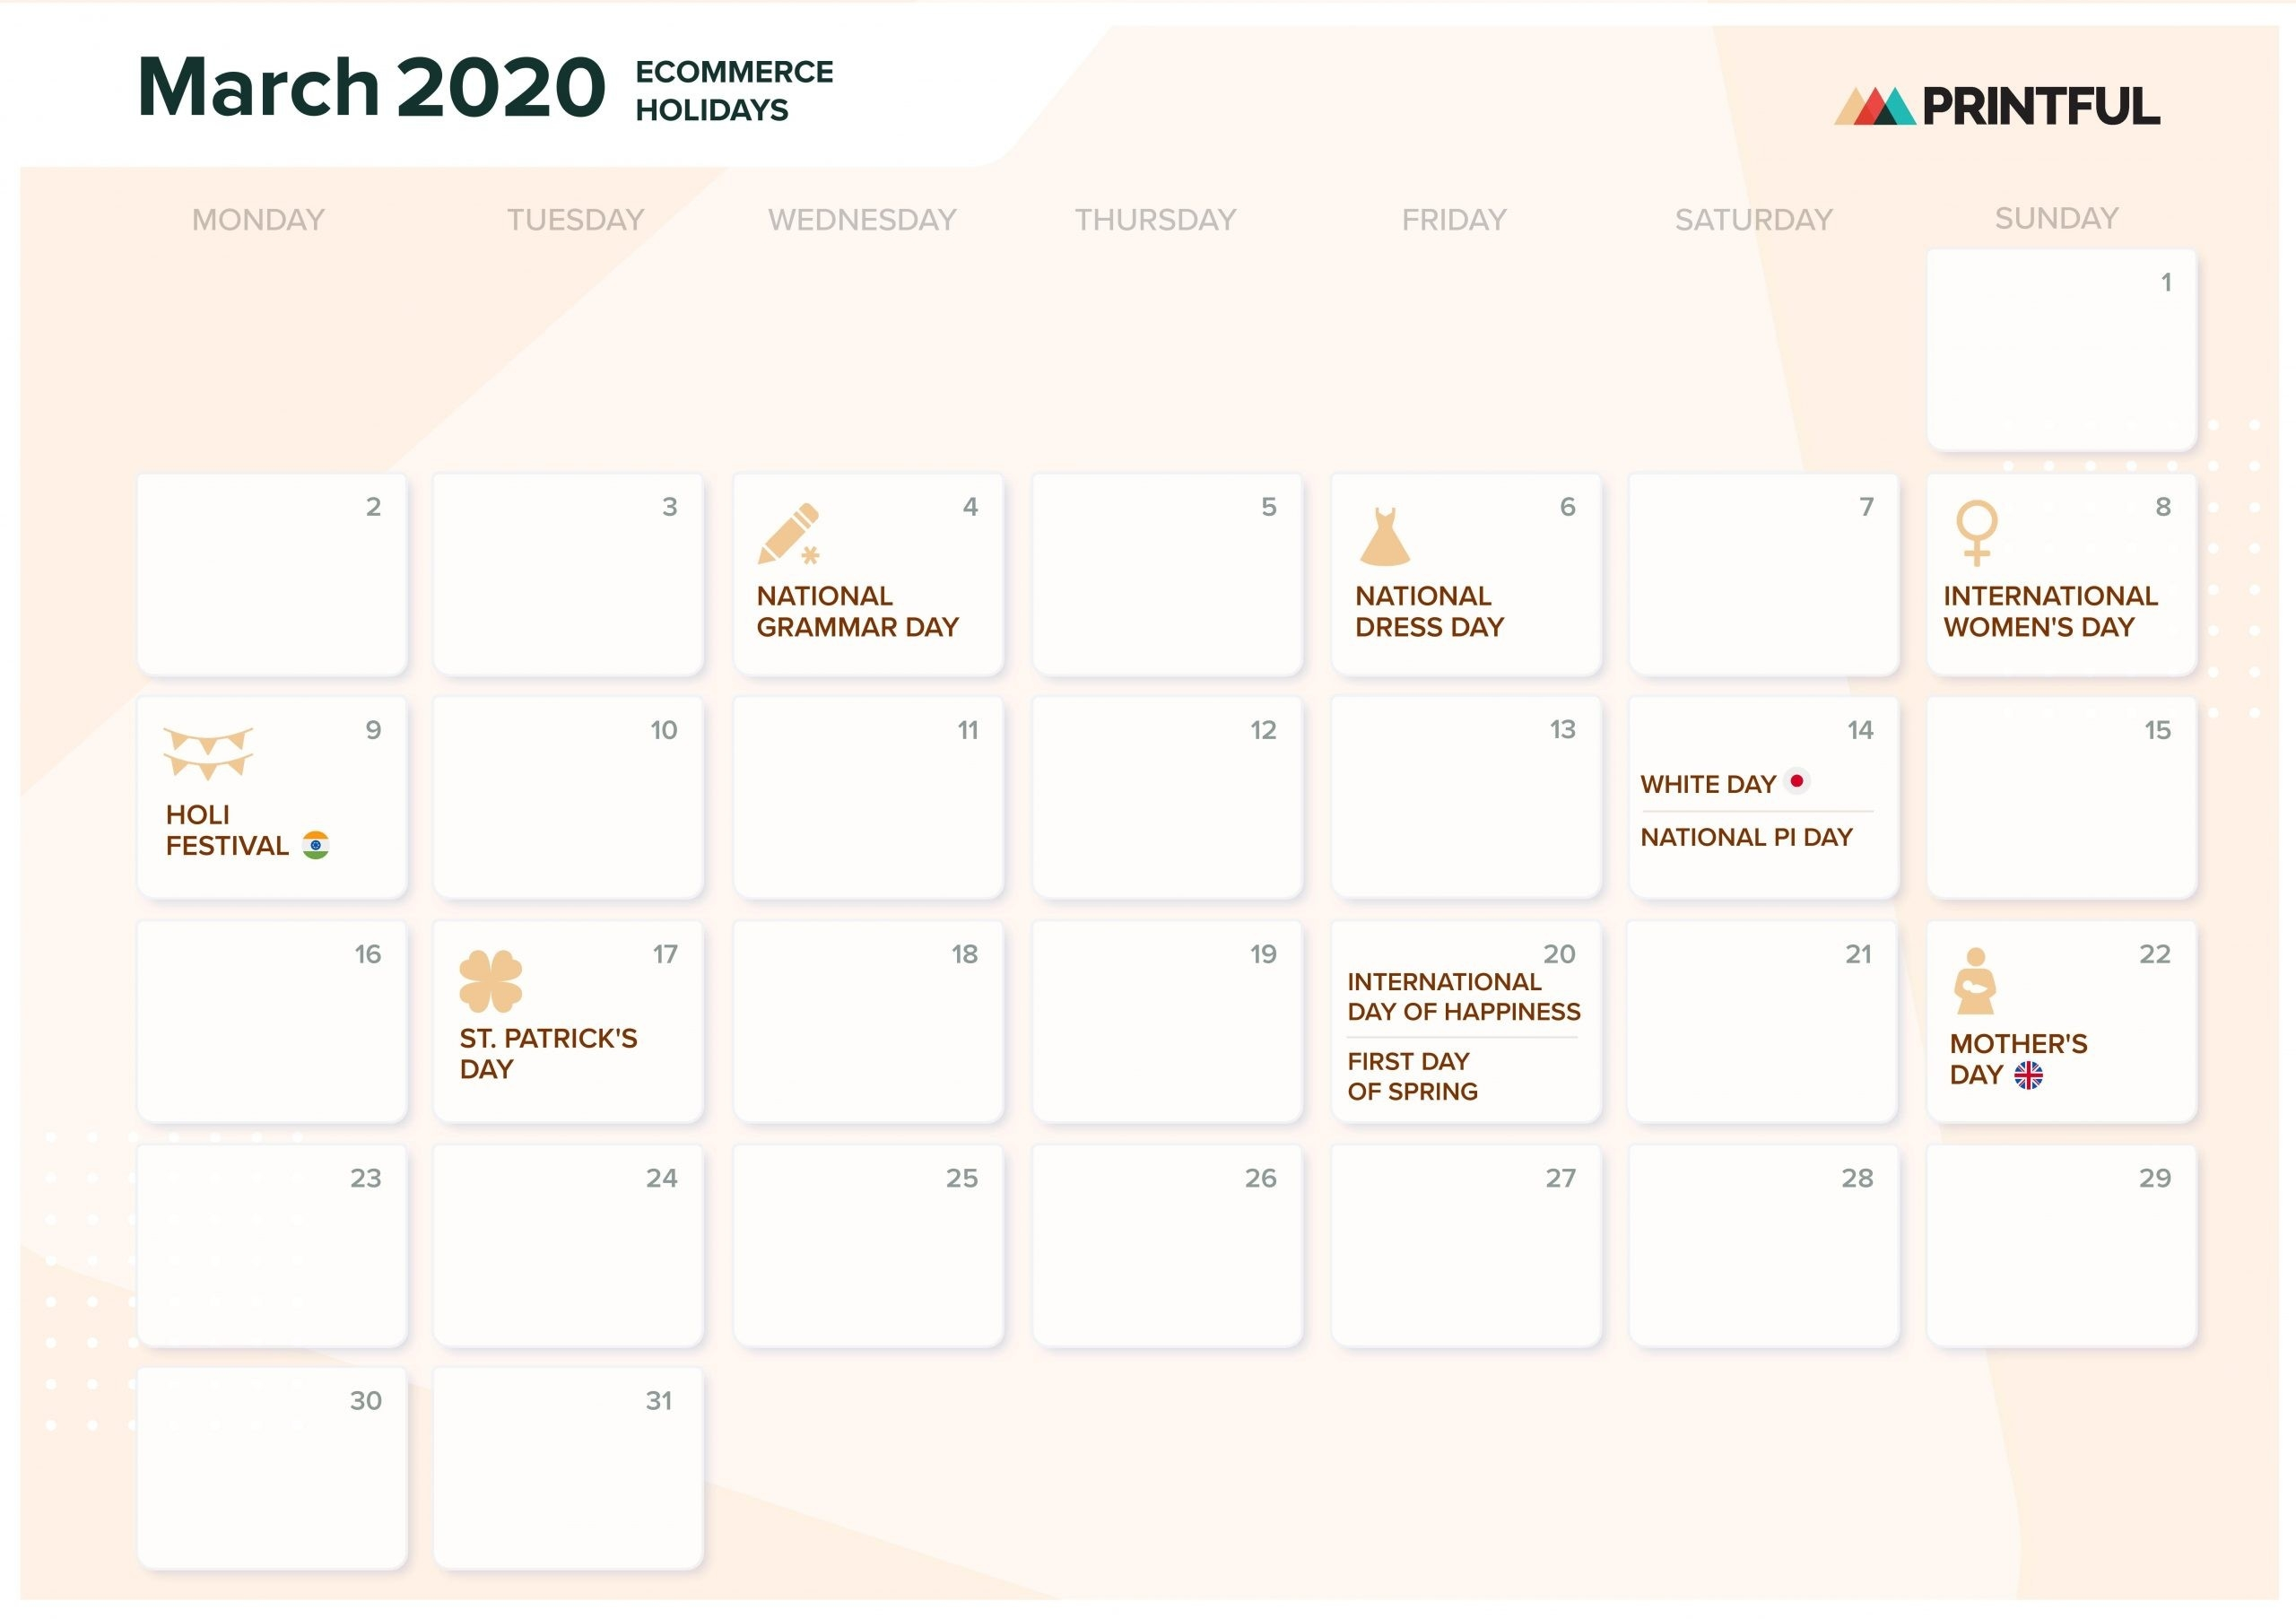 The Ultimate 2020 Ecommerce Holiday Marketing Calendar  2021 Julian Date Code Calendar